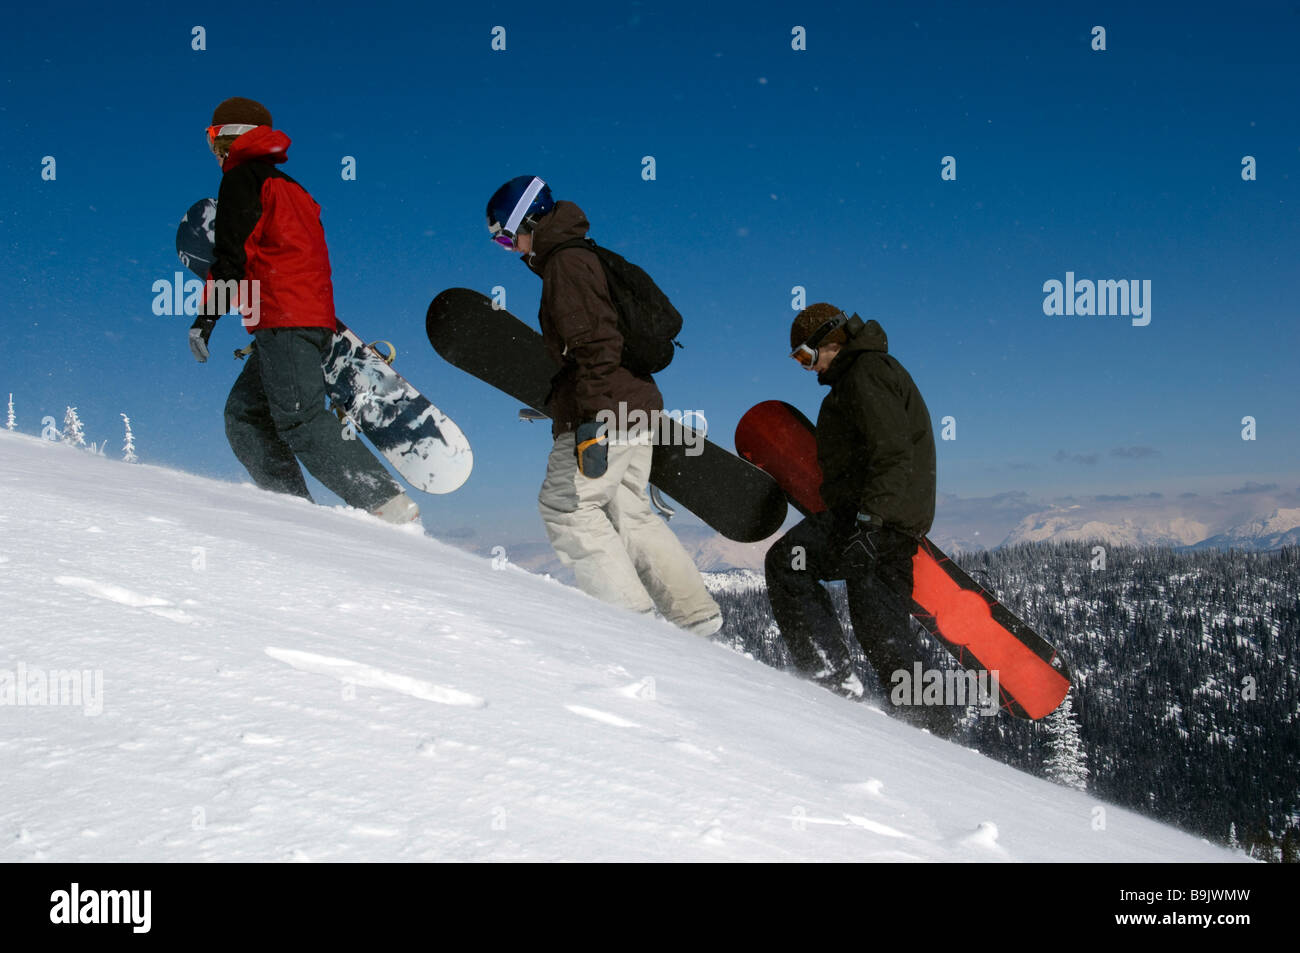 Three young men walk up a snowy mountain with their snowboards in the backcountry. - Stock Image